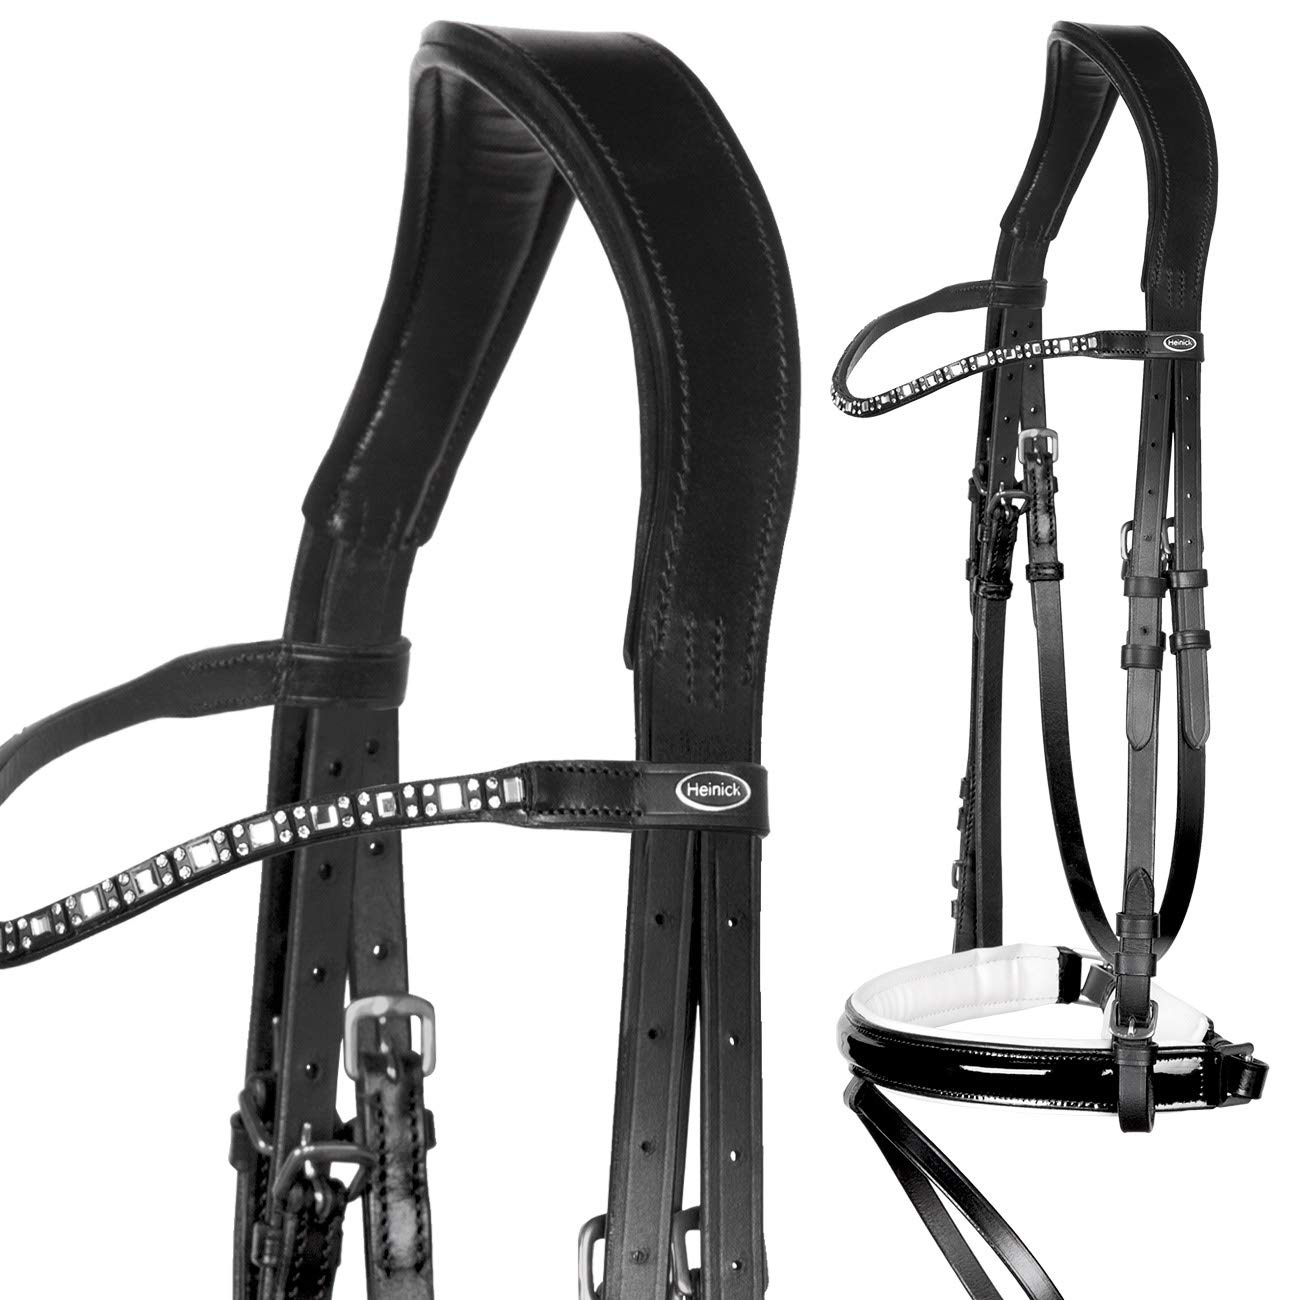 Full-Blooded Heinick Equestrian Fine  Shiny Hamal Patent Leather Bridle Black and White  Bridle